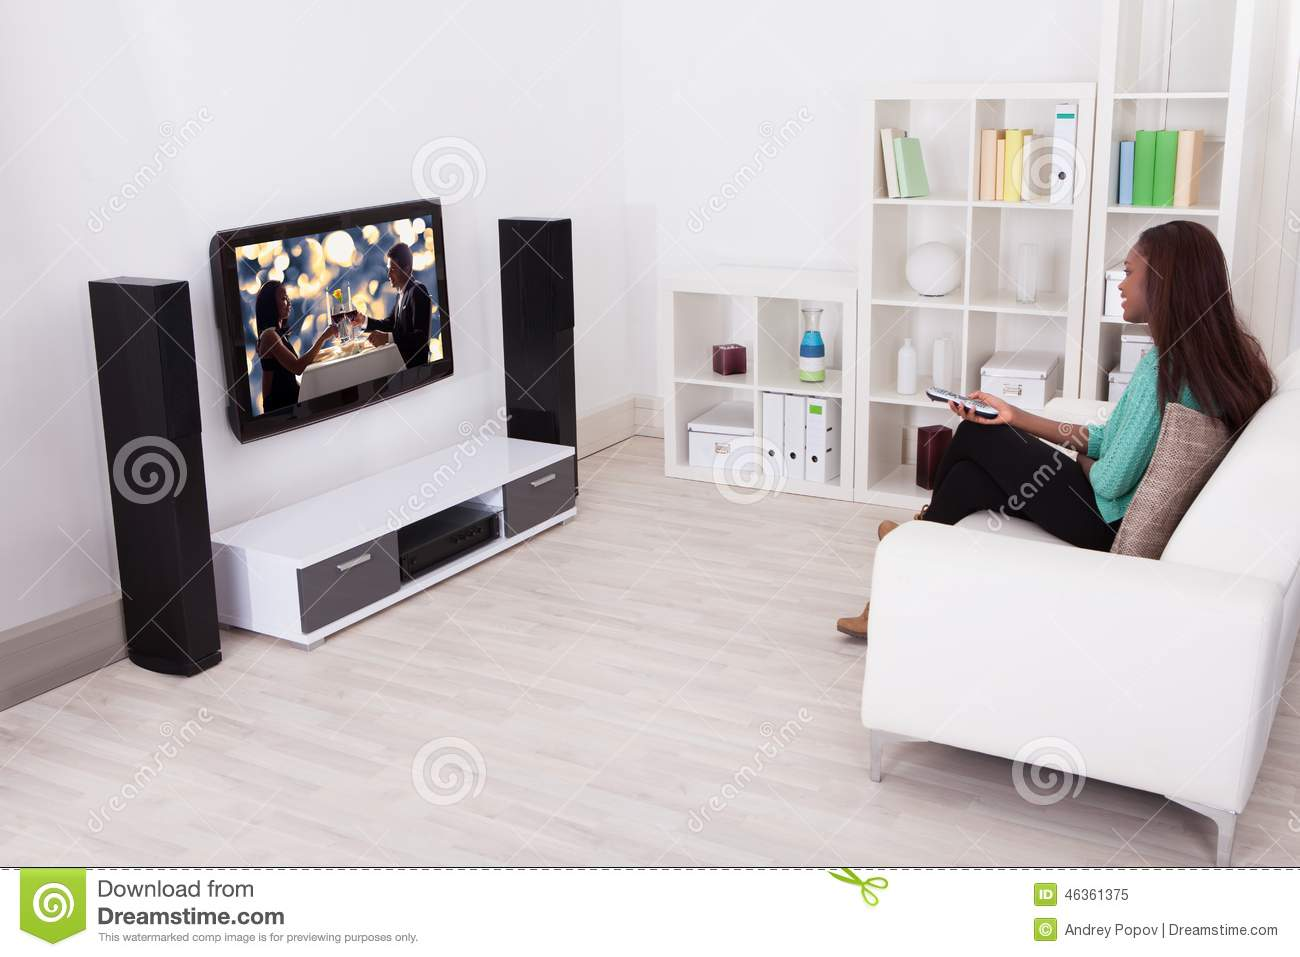 Woman Watching Tv In Living Room Stock Image - Image of indoors ...